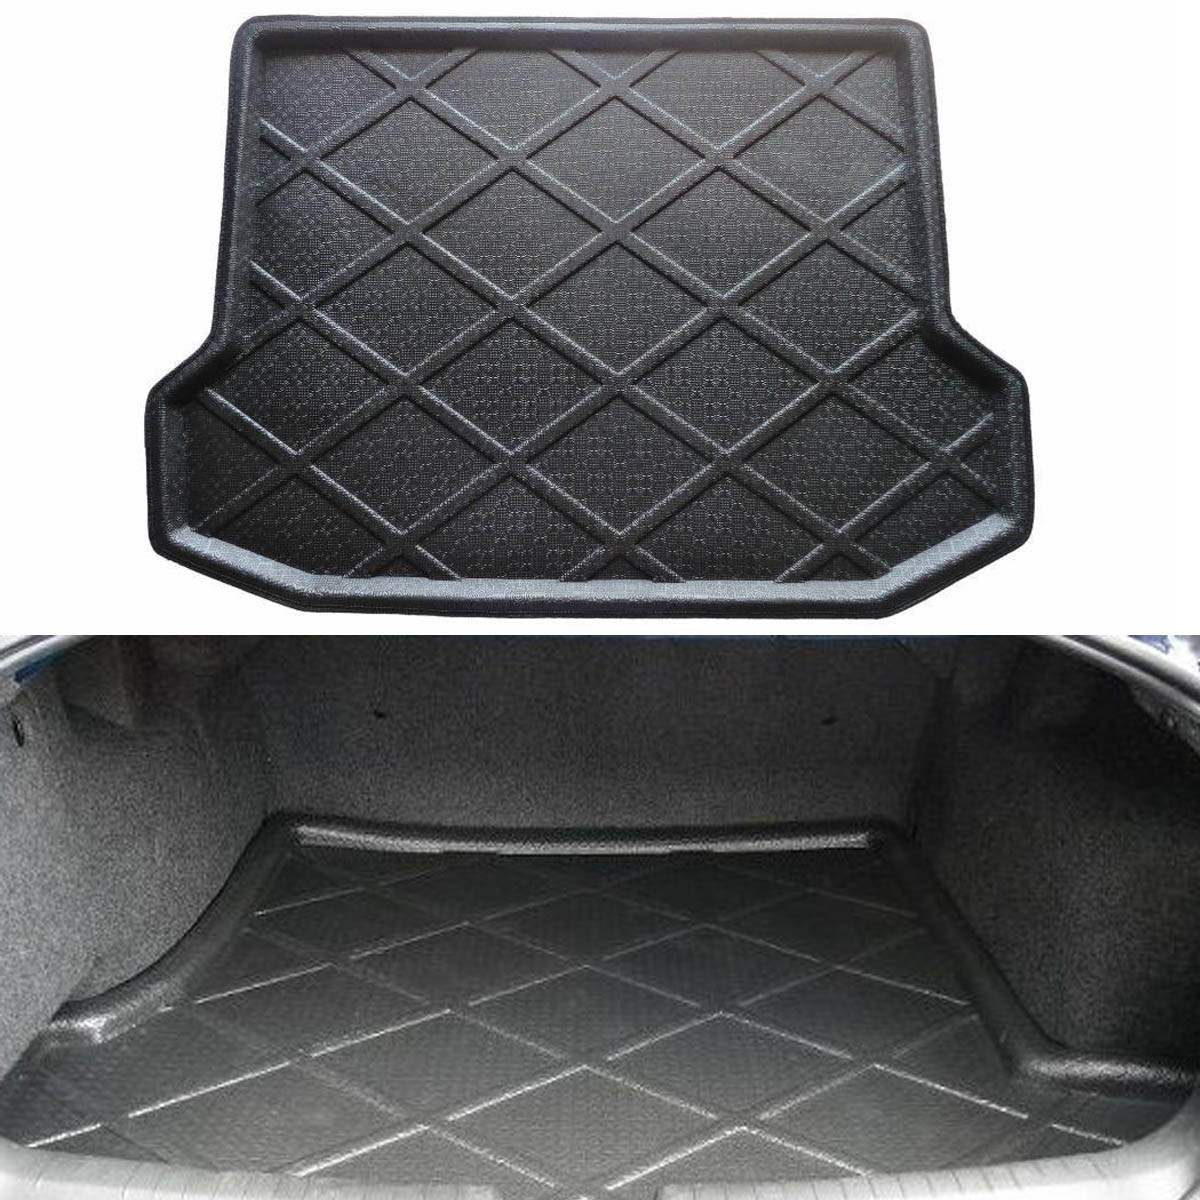 Rubber floor mats toyota rav4 - Car Rear Trunk Cargo Floor Protection Mat Pad Liner For Toyota Rav4 2007 2013